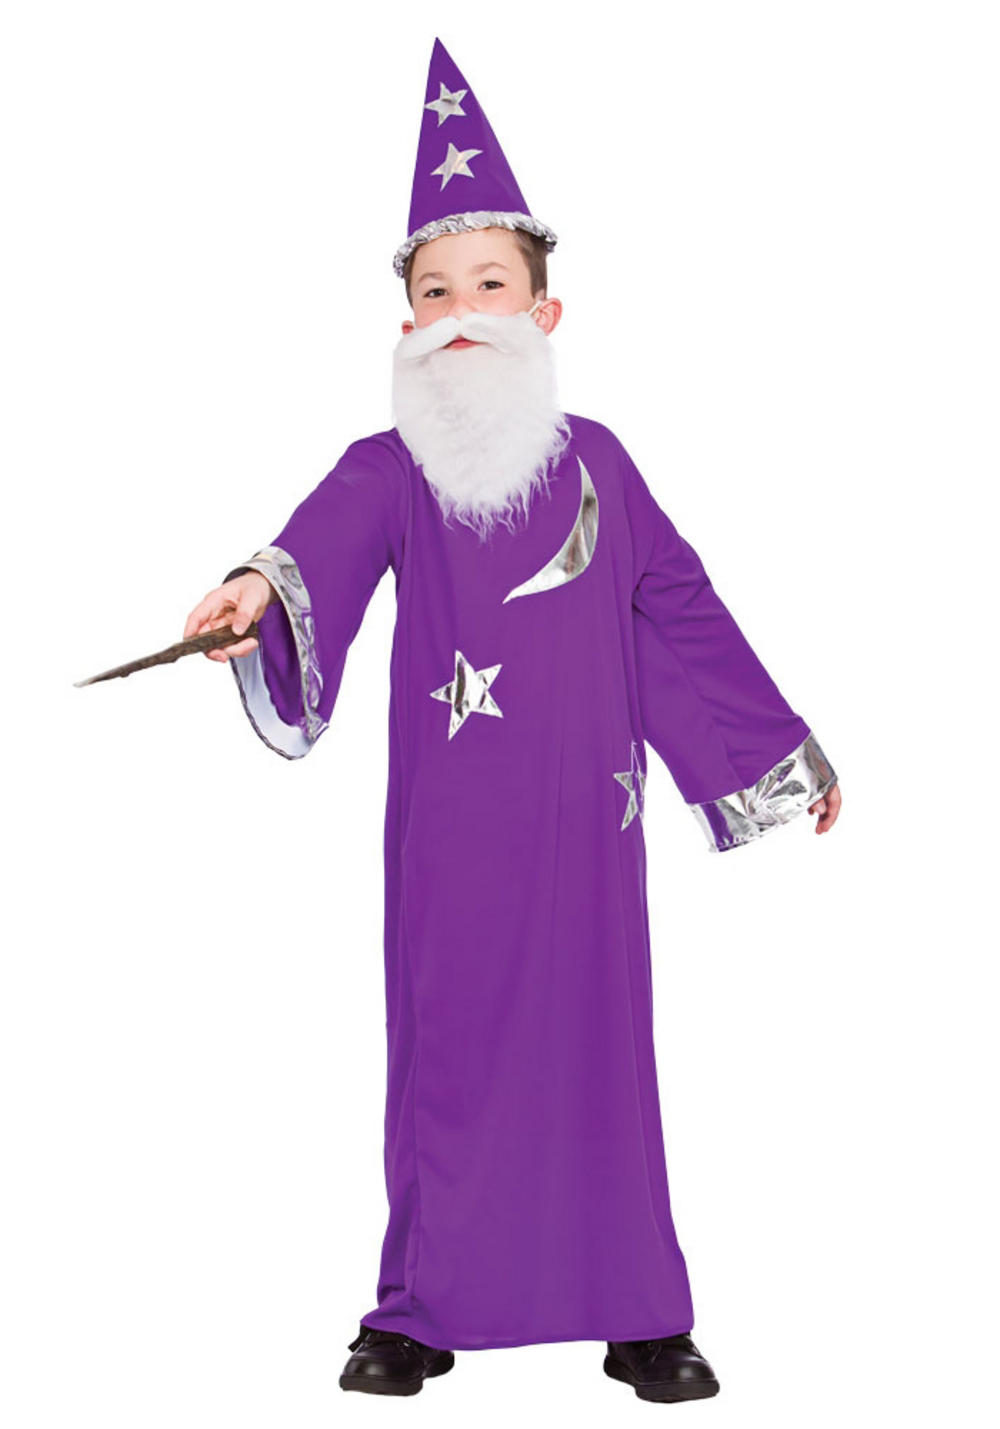 Wizard Kids Costume | All Halloween | Mega Fancy Dress